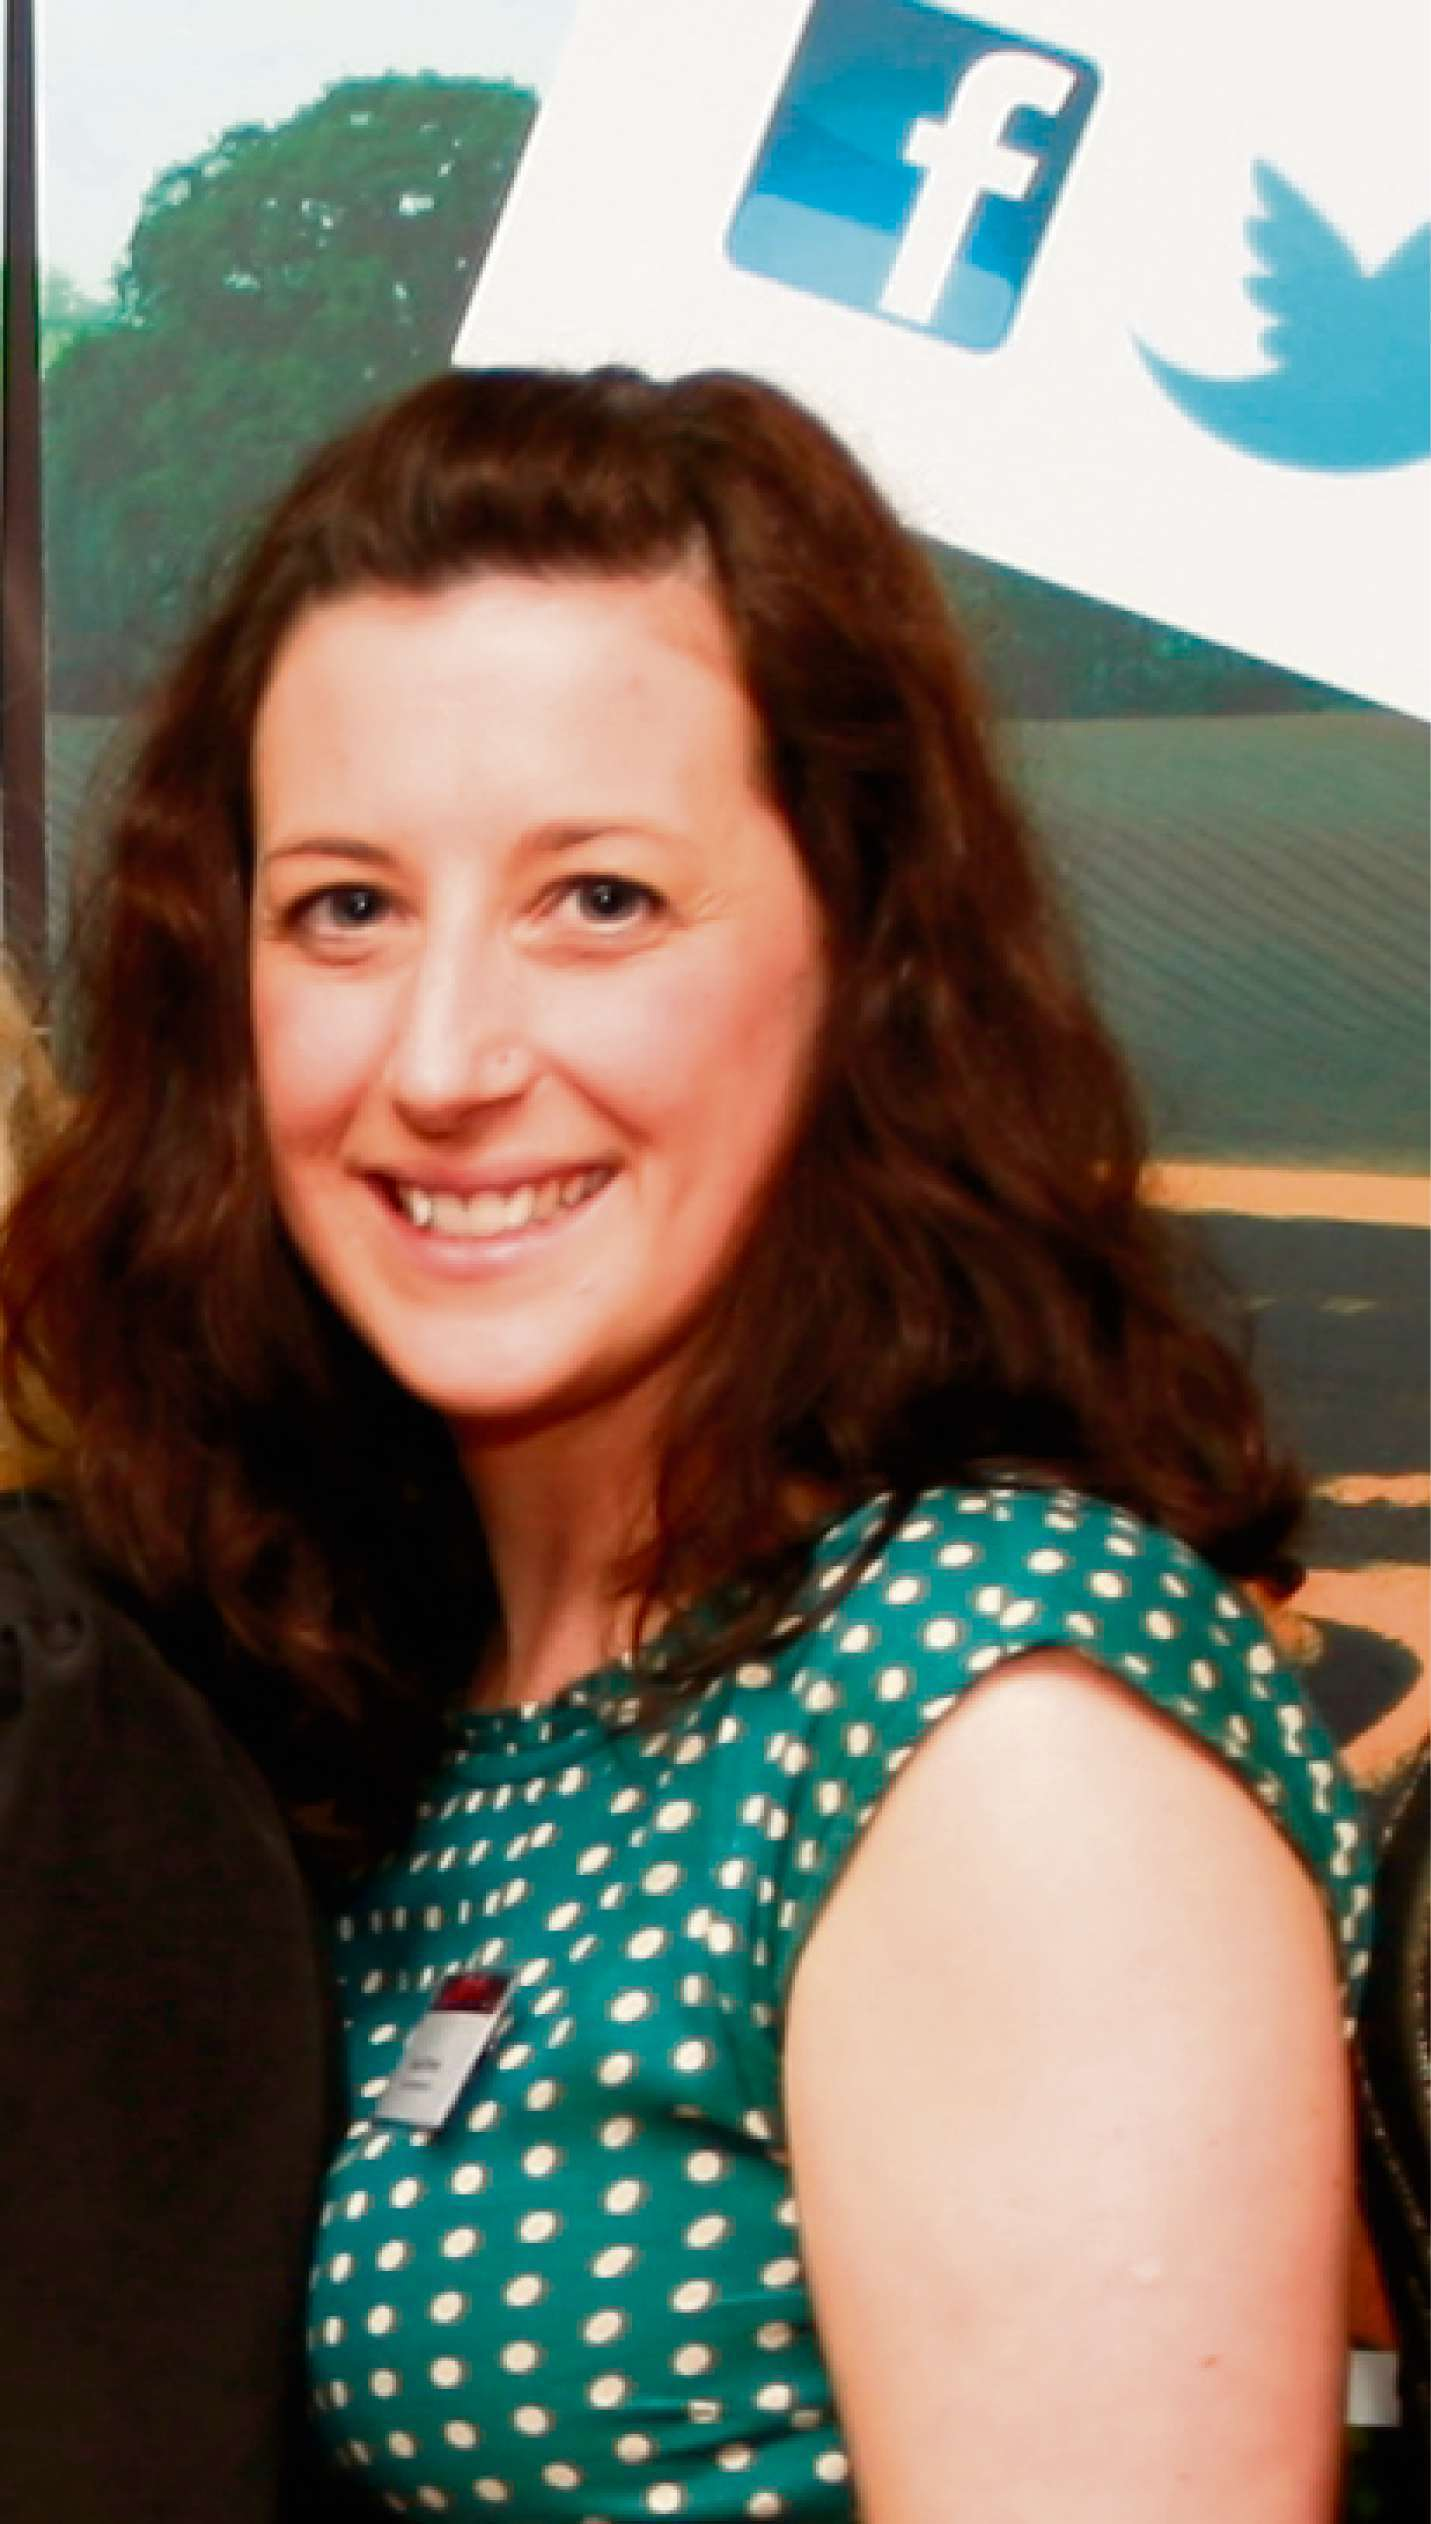 Becci O'Reilly, from Ross-on-Wye, is this year's Flavours of Herefordshire Festival director.